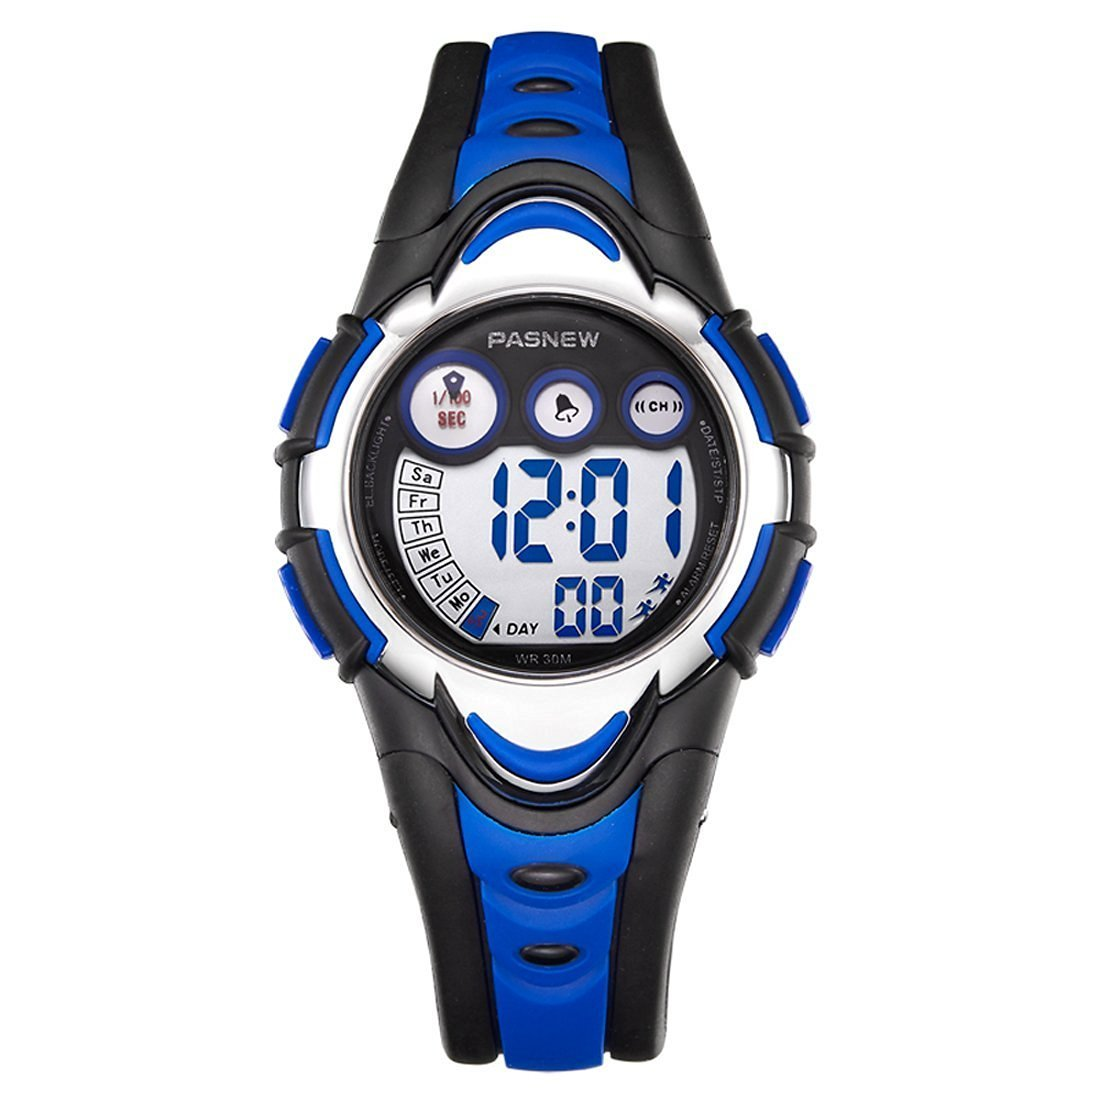 Kids Watches Digital Waterproof Silicone Comfortable Children Toddler Wrist Watches Function Sport Outdoor Electronic Wristwatch Gift for Boys Girls Little Child,Blue